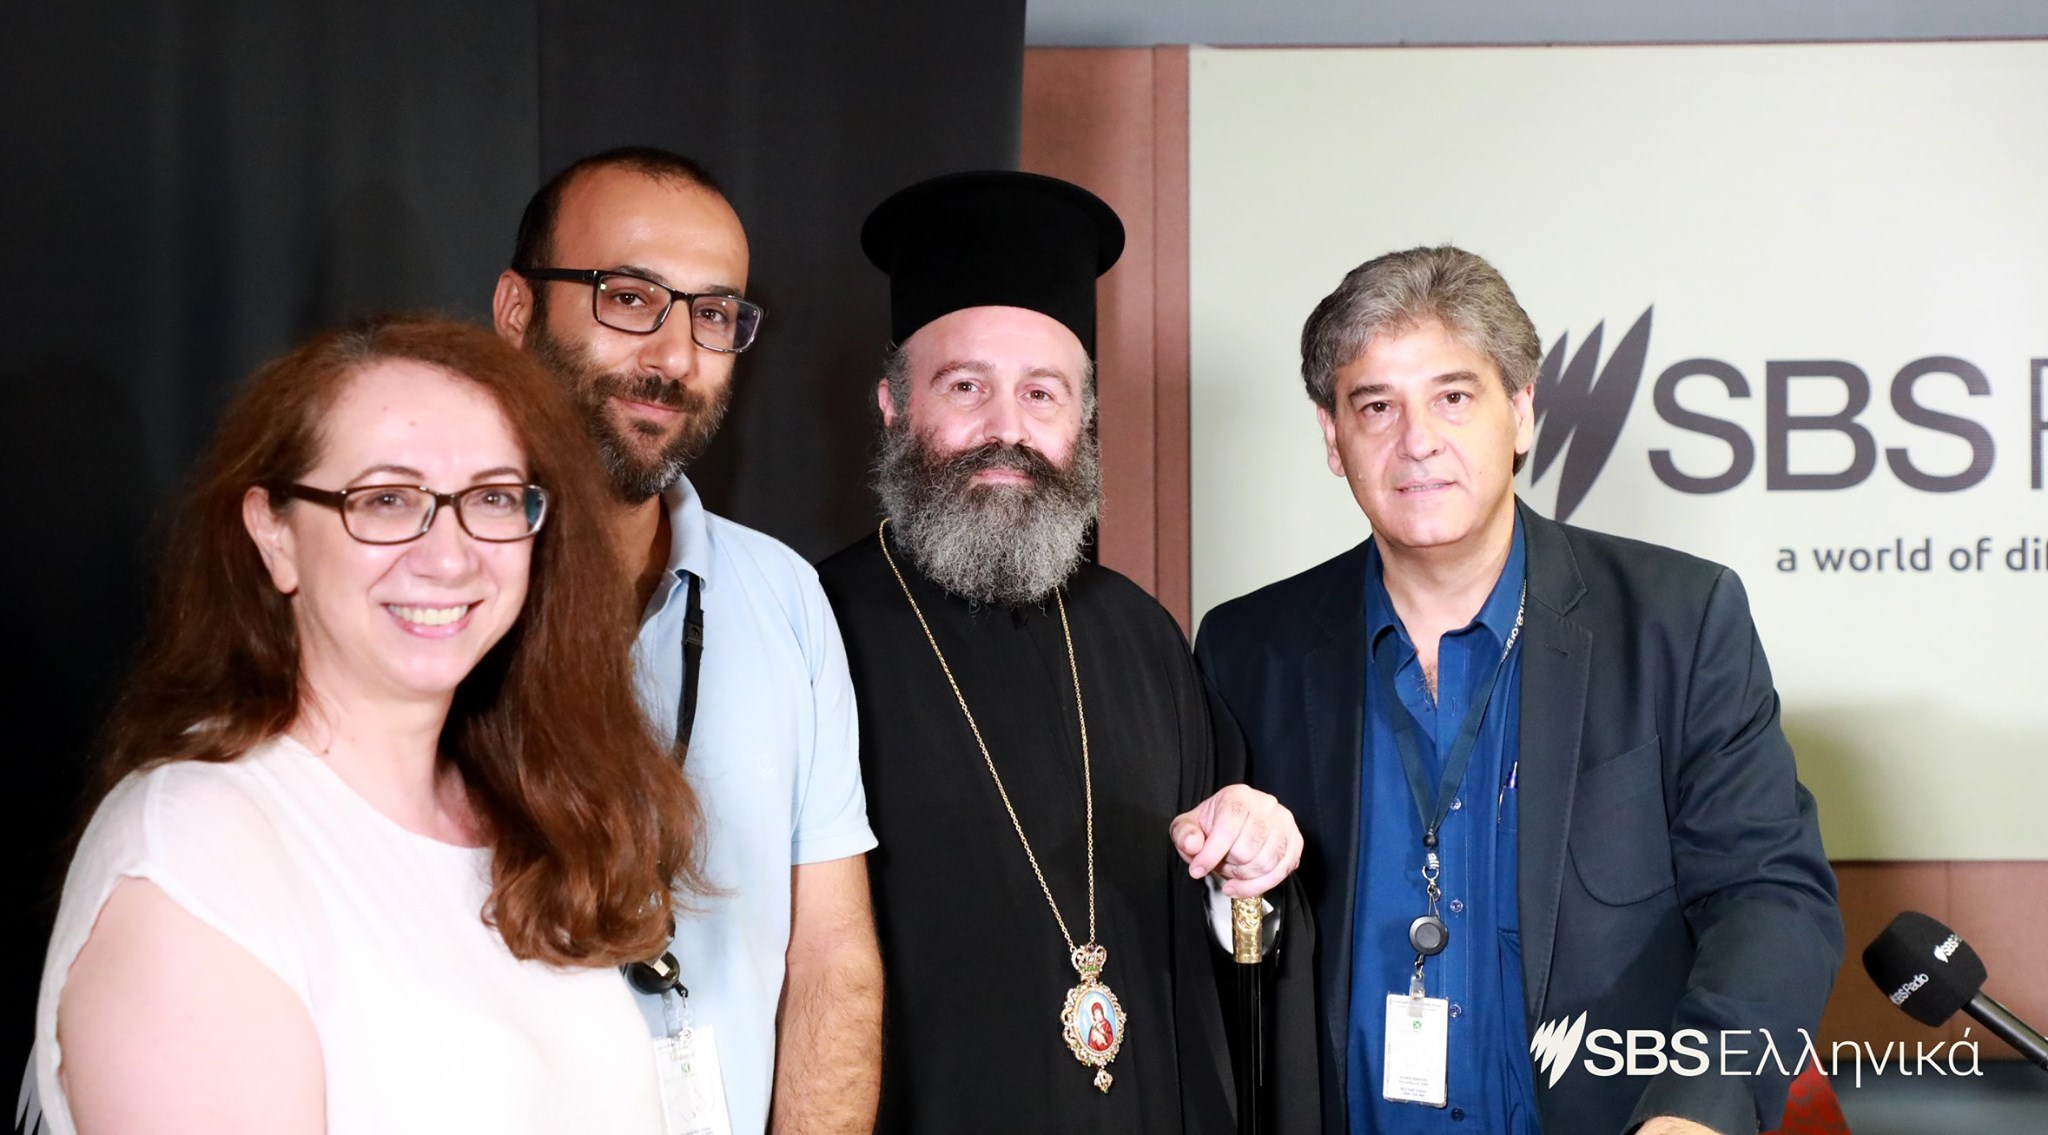 Archbishop Makarios at SBS offices in Sydney